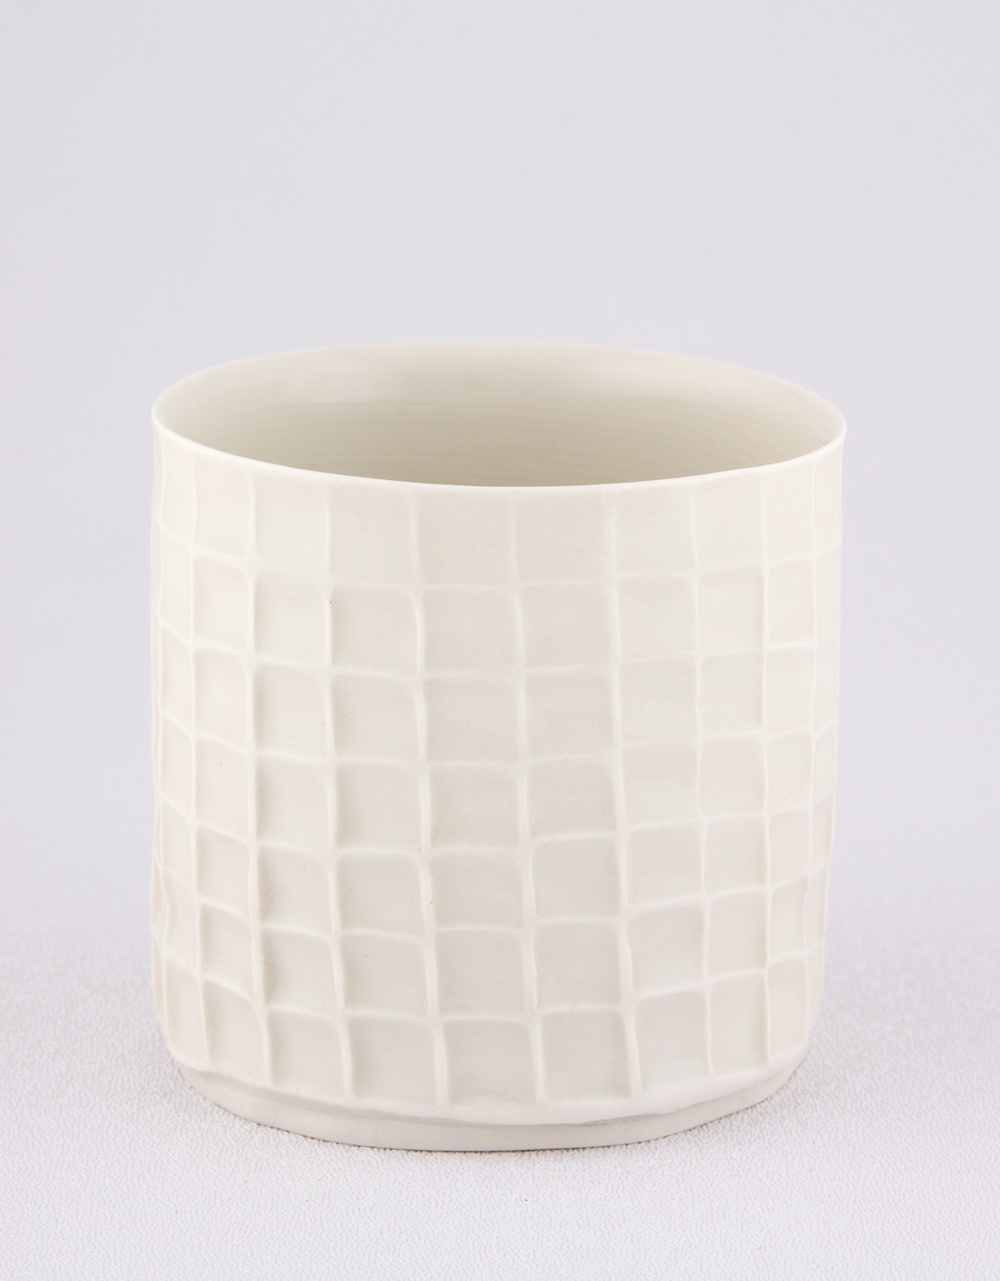 Shio Kusaka  Untitled (cup)  2009 Porcelain 3 ¼h x 3 ¼w in SK010